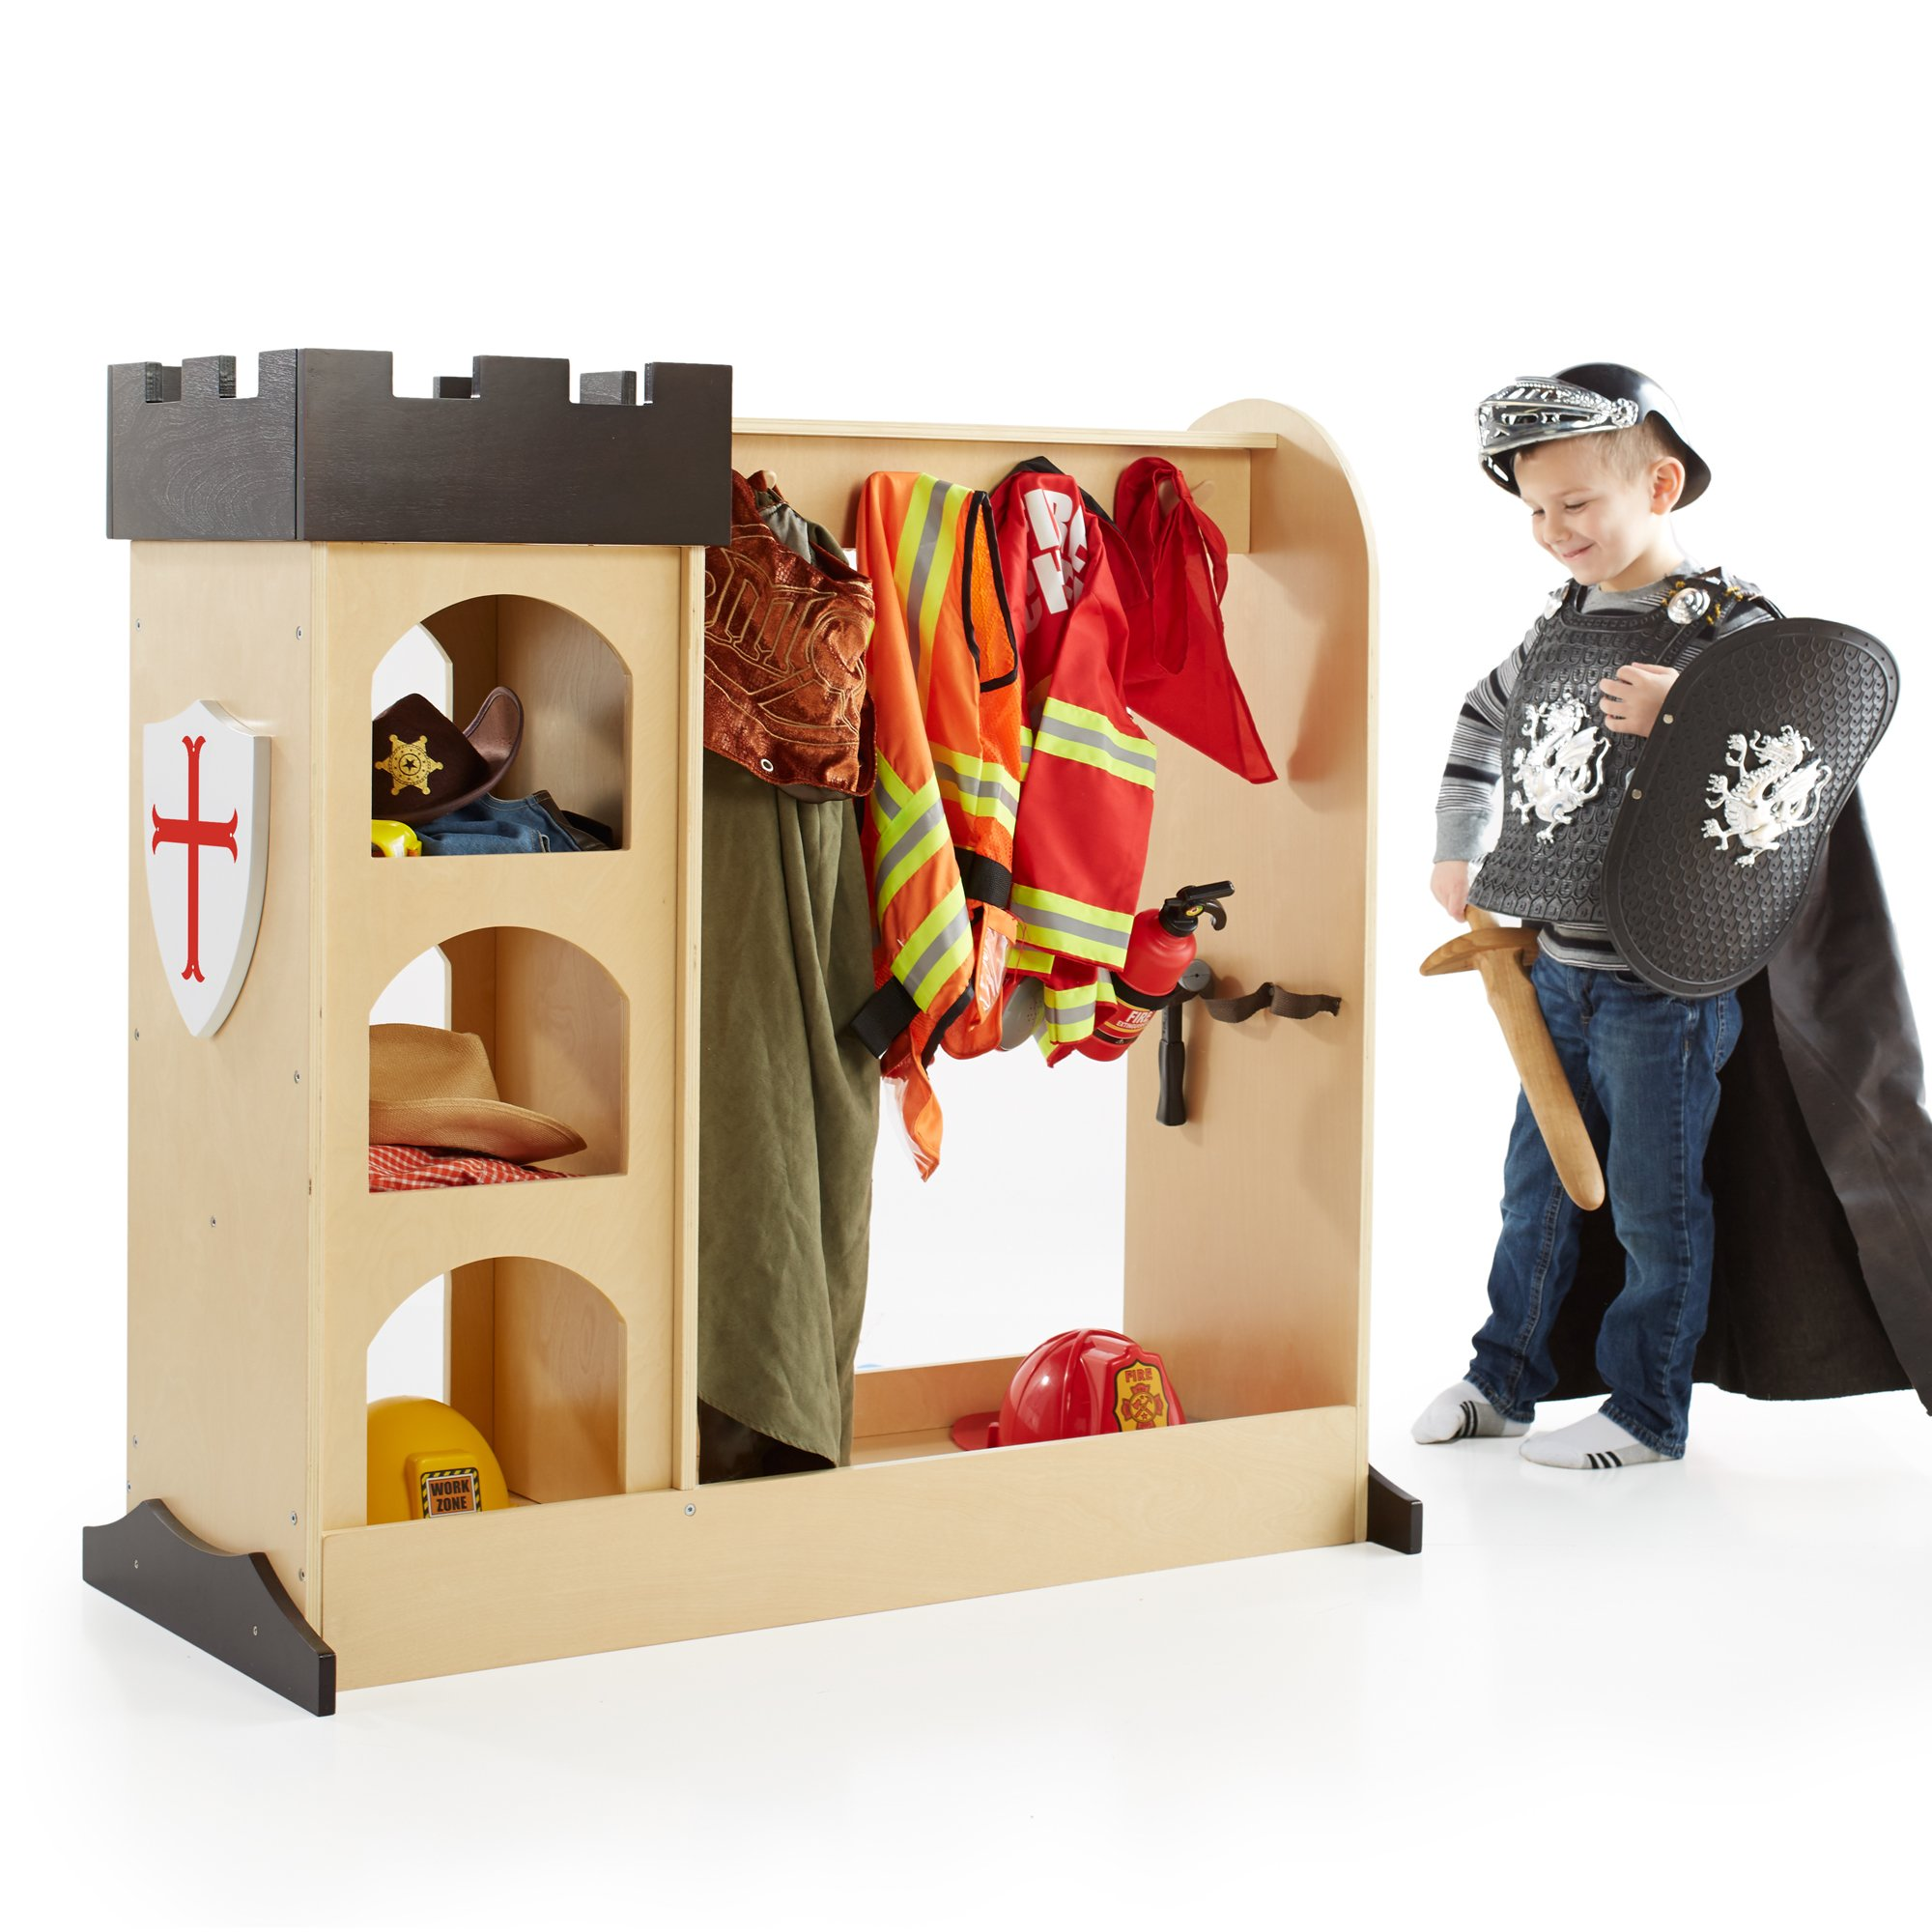 Guidecraft Castle Themed Dress Up Center : Dramatic Play Dresser with Mirror and Safe Hooks, Storage Armoire for Kids - Toddlers Costume Organizer, Children Playroom Furniture by Guidecraft